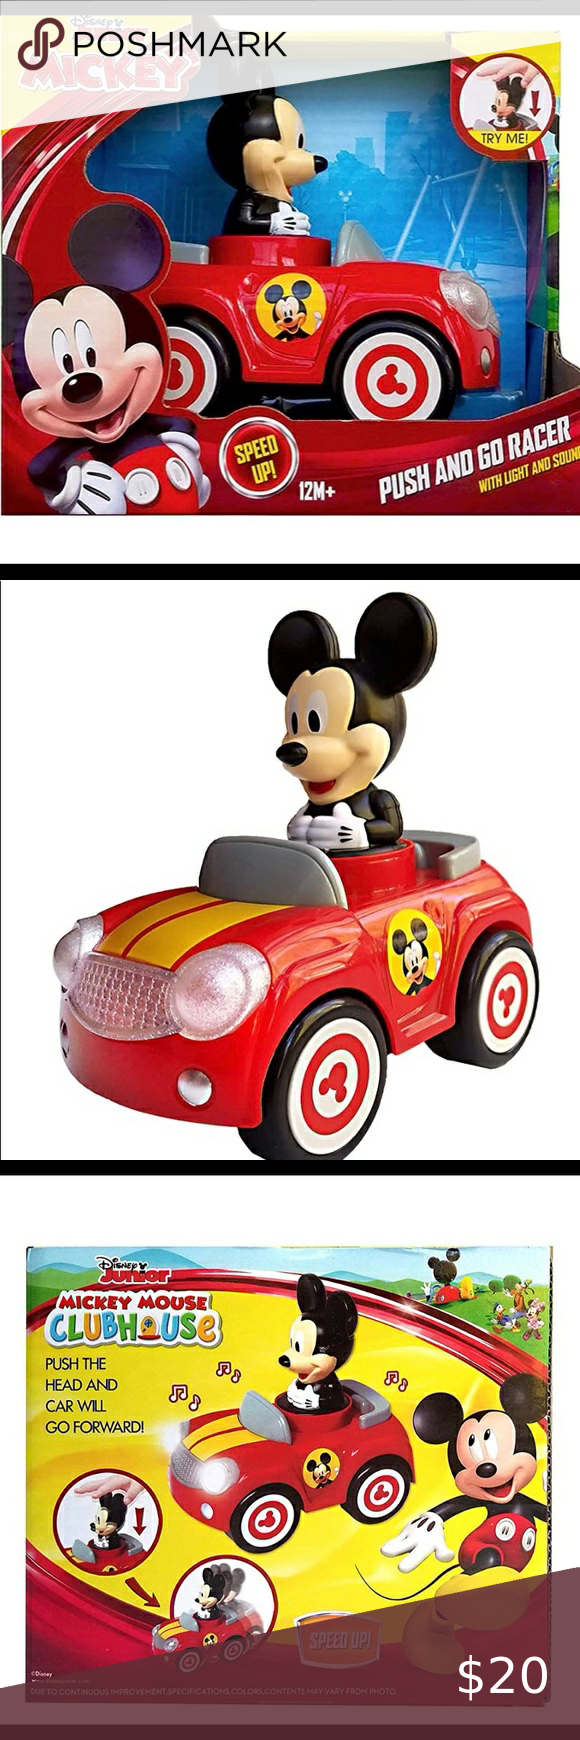 Disney Mickey Mouse Push and Go Racer New Mickey Car 18 Months+